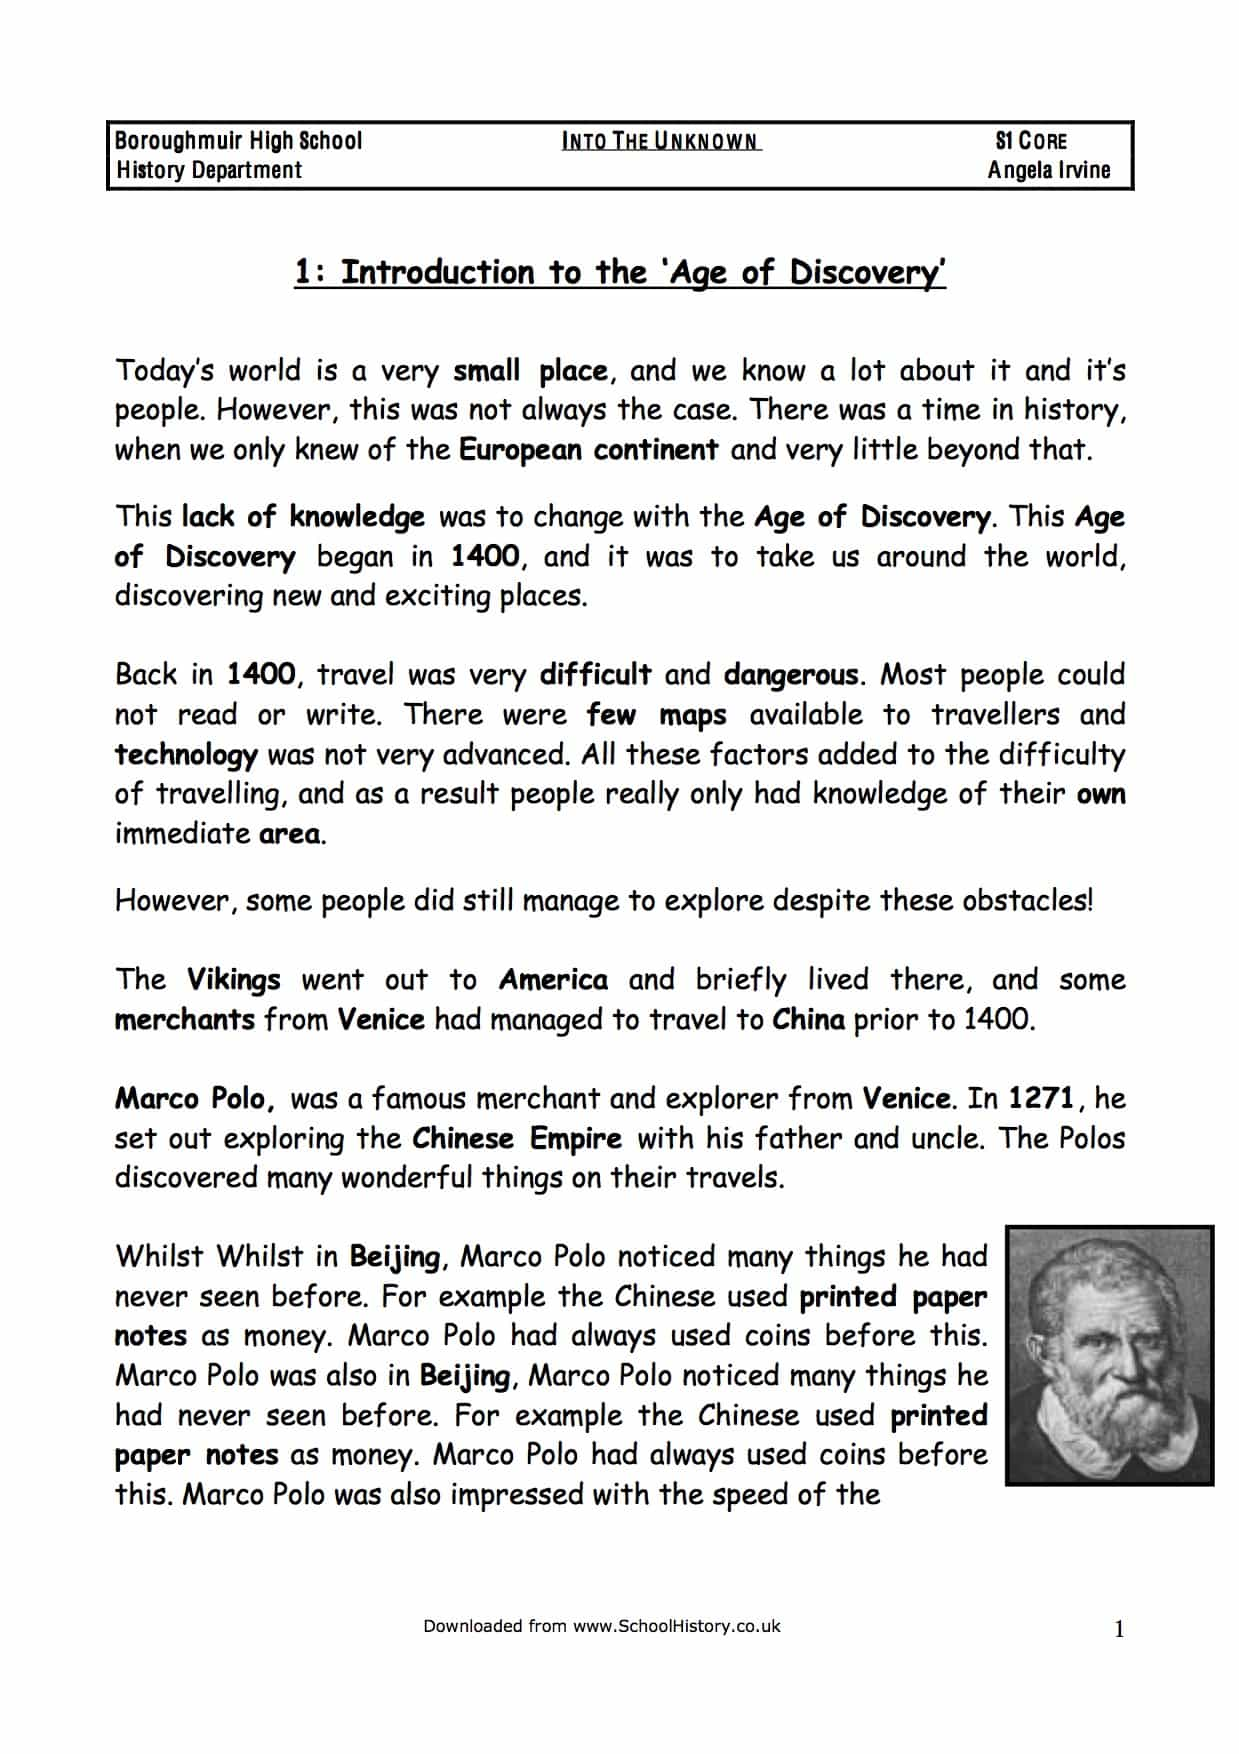 Download The Age of Discovery & Exploration